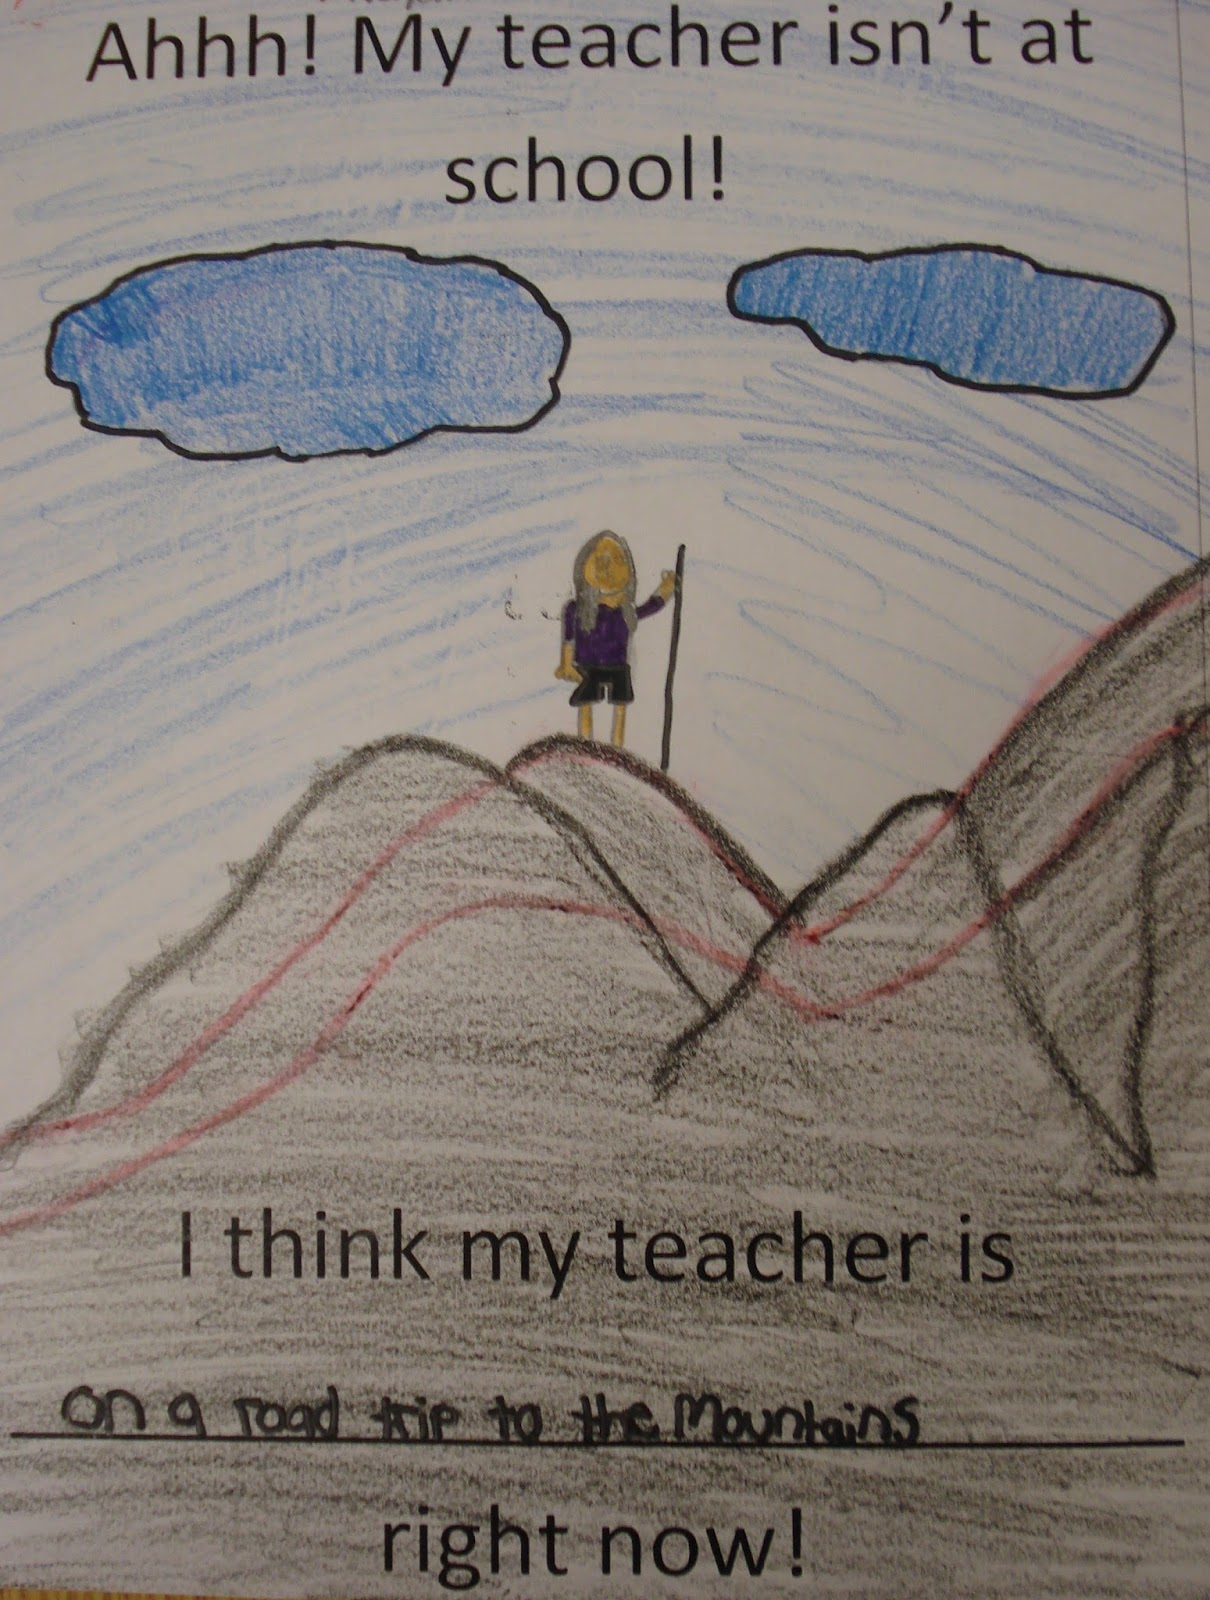 The Teacher Isnt Following My Childs >> Ms Shook Land Sub Drawings My Teacher Isn T At School